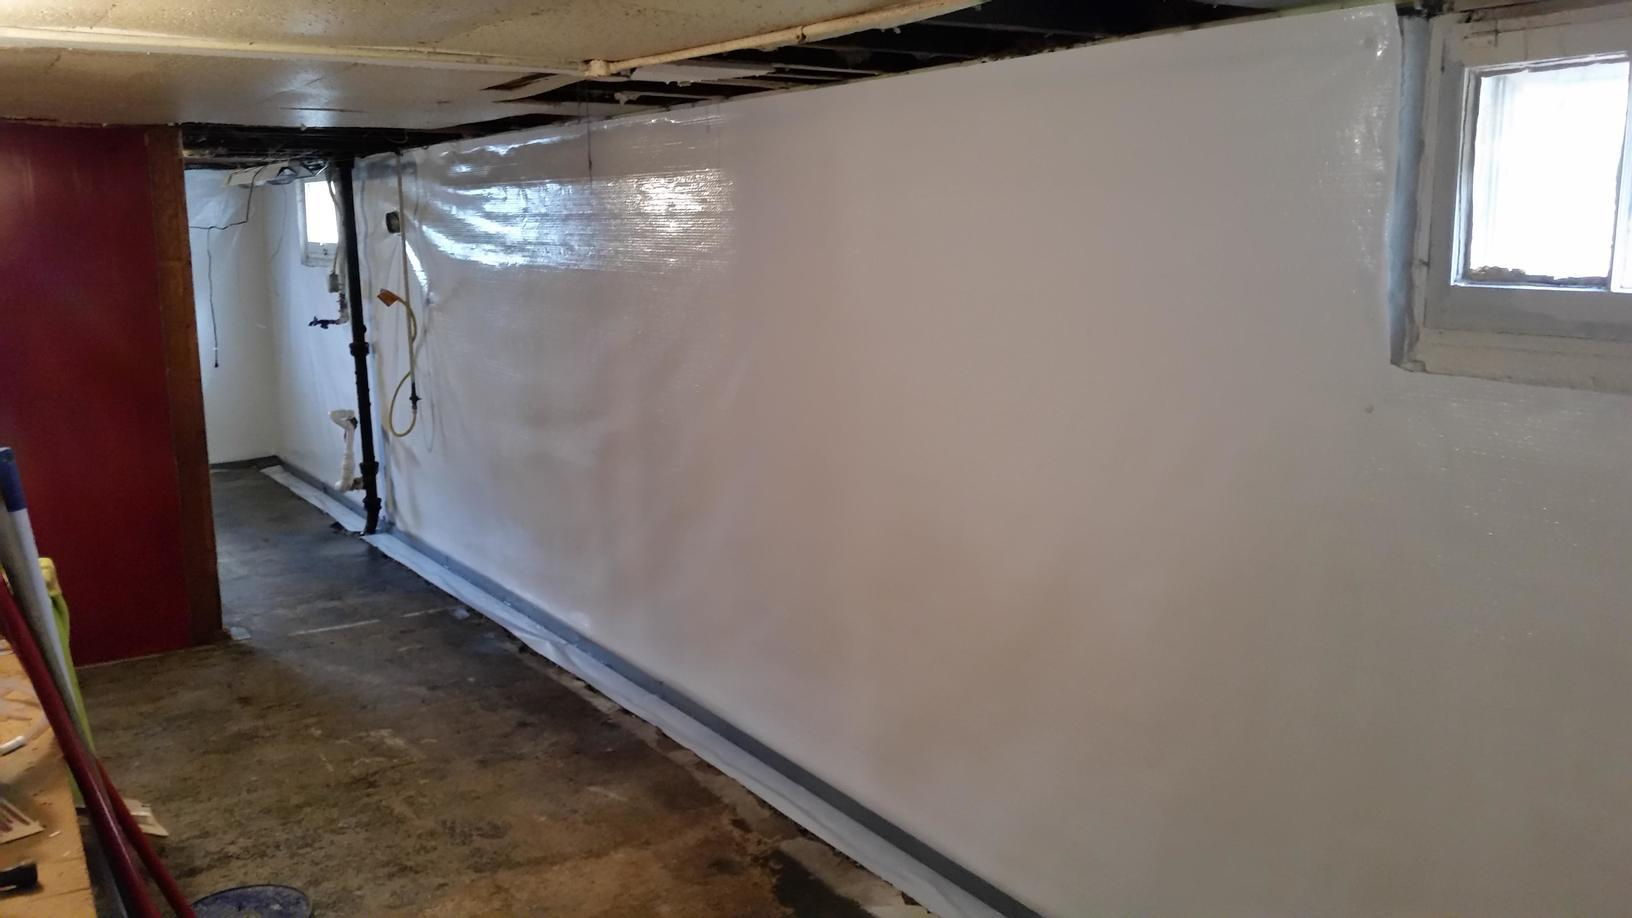 The CleanSpace walls will create a water barrier to keep the home dry.